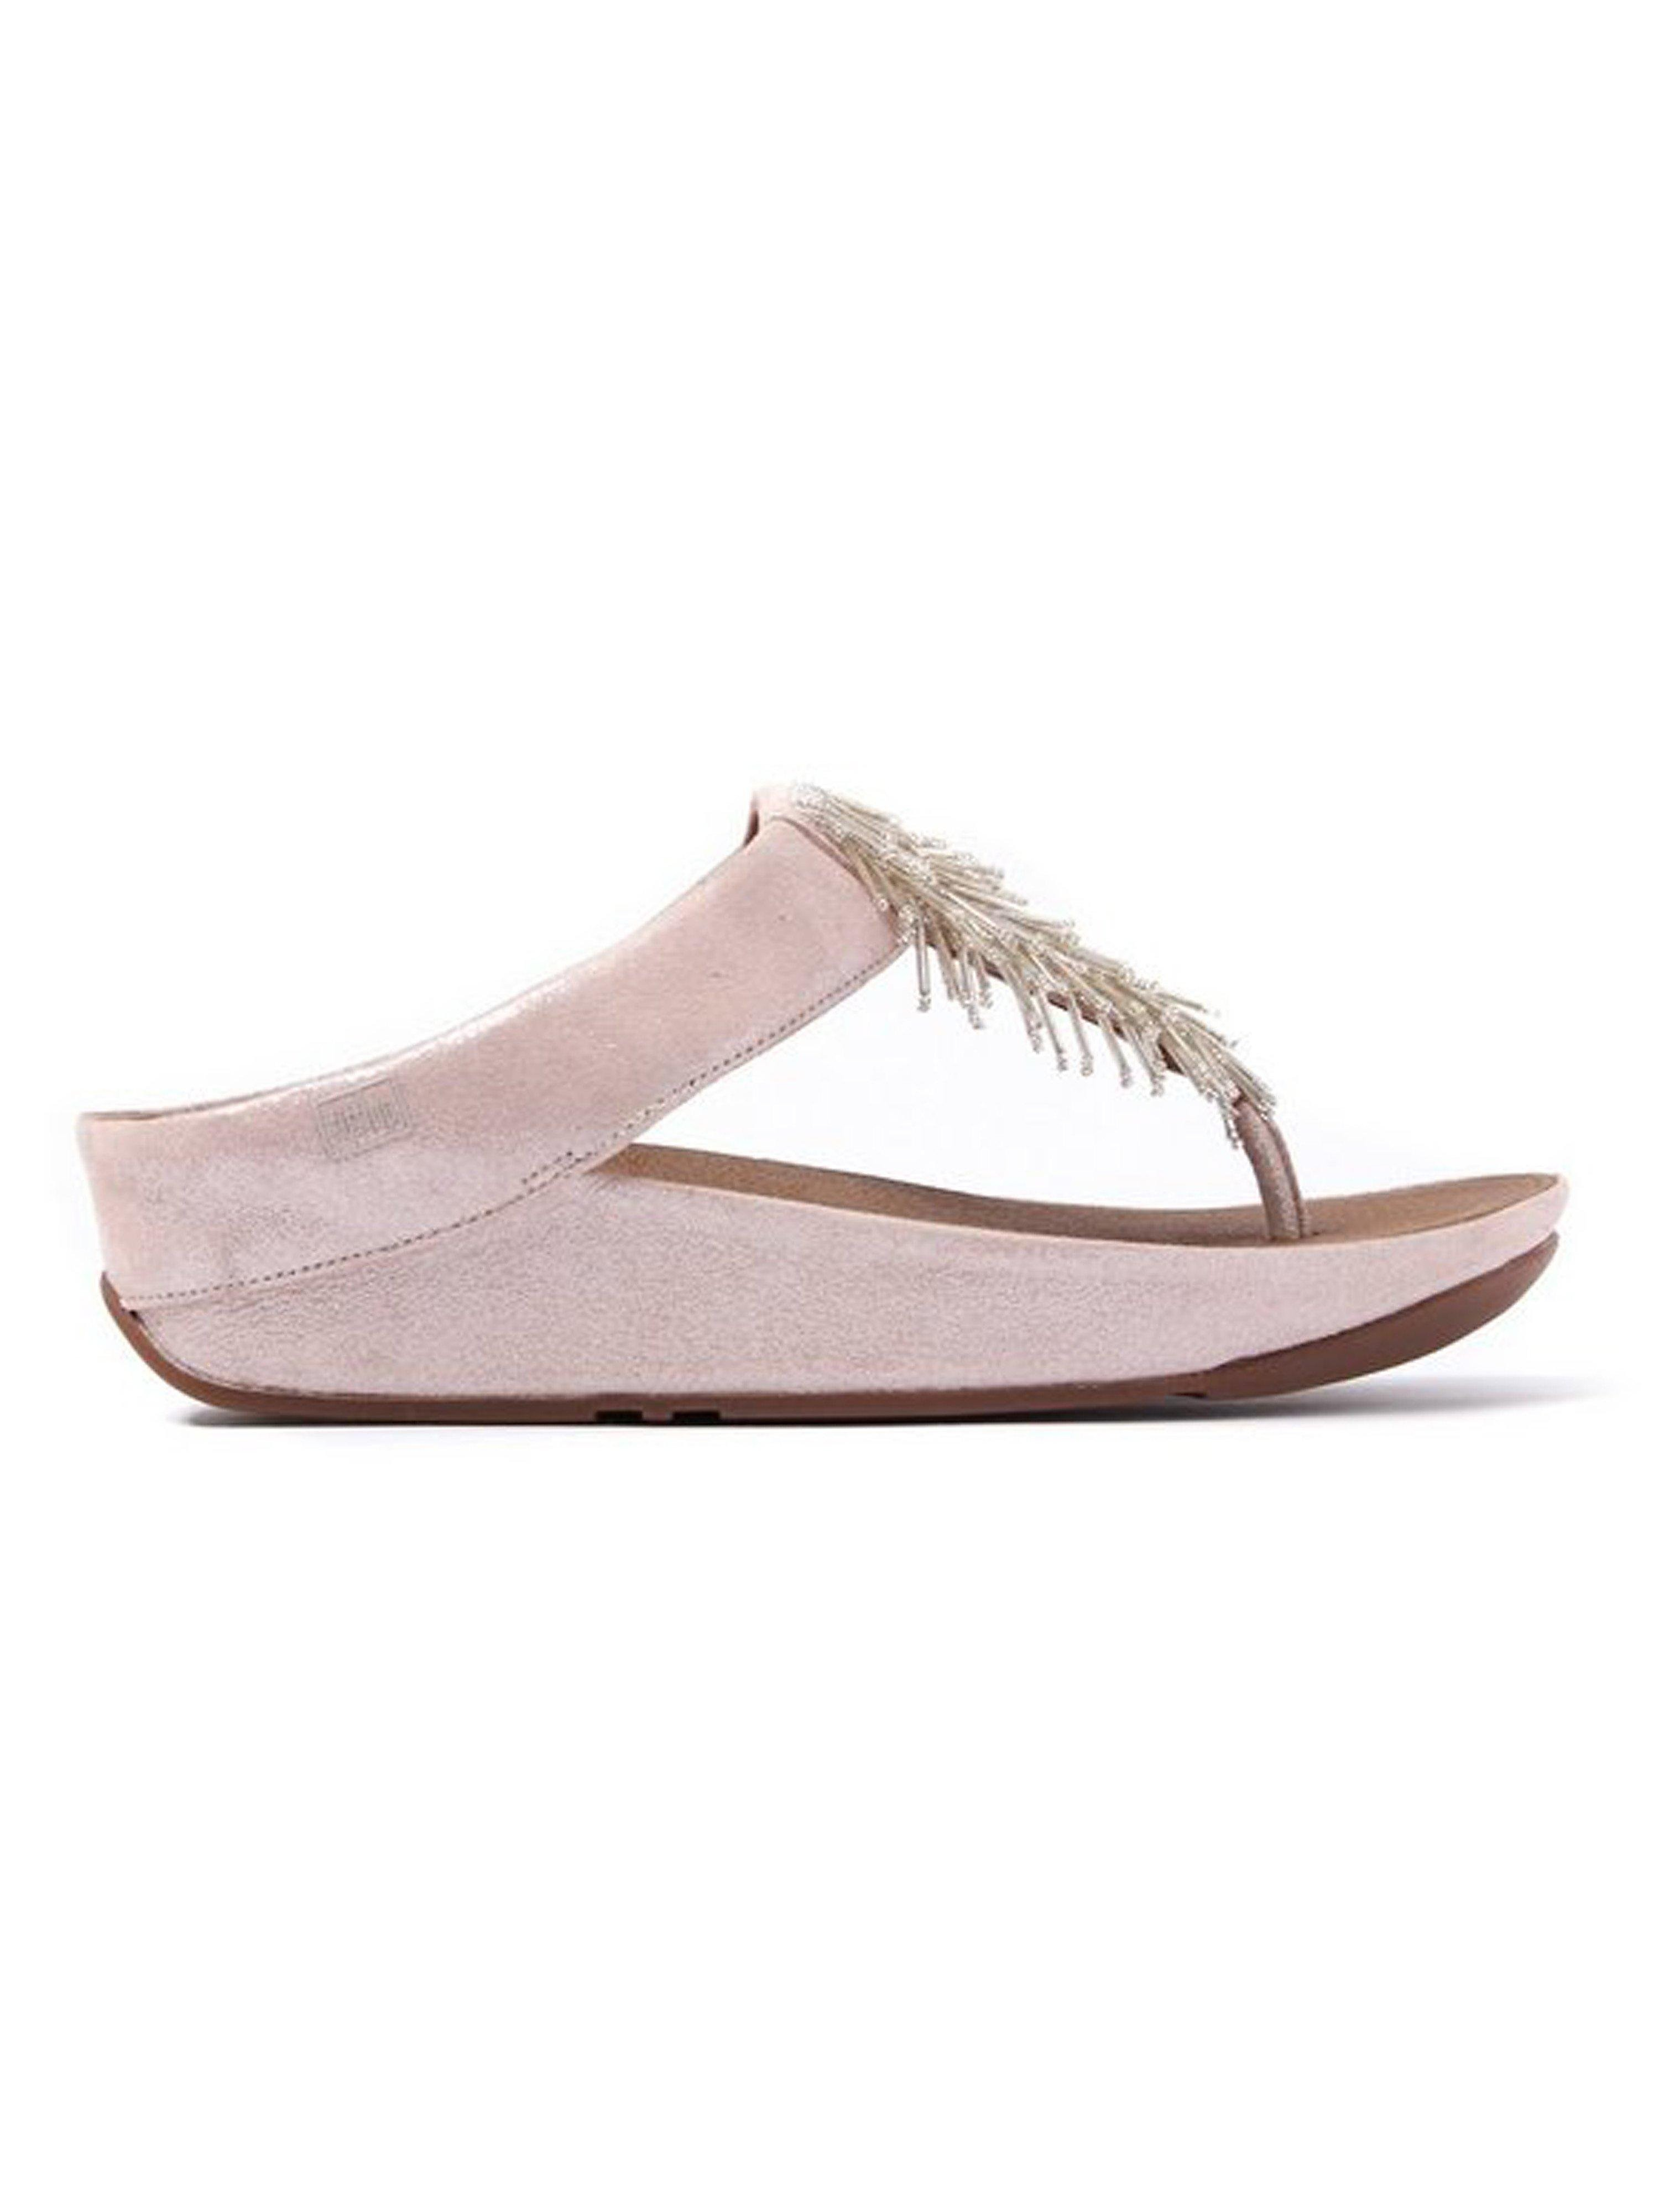 FitFlop Women's Cha Cha Leather Beaded Toe-Post Sandals - Silver